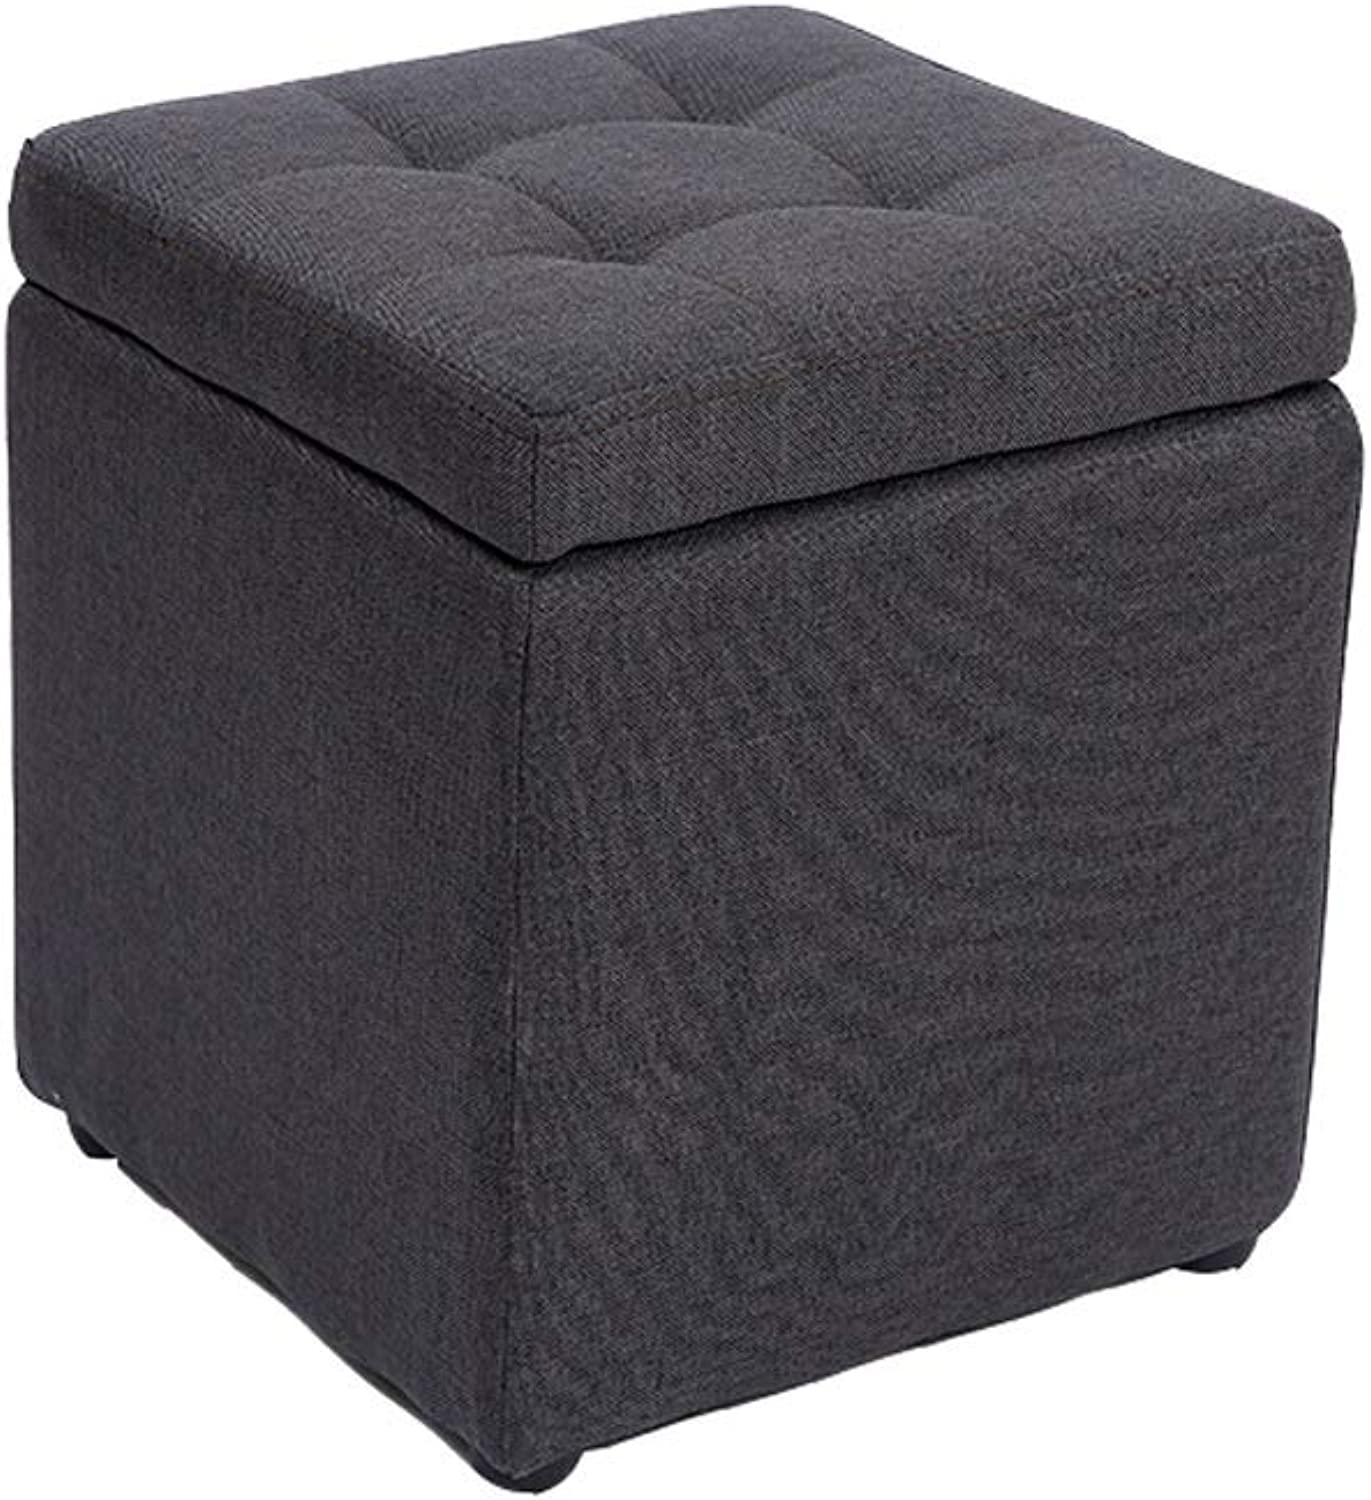 Wei Zhe- Storage Stool - Multi-Function Simple Fabric Storage Stool Multi-color Optional Non-Slip Storage Square Stool Footstool Sofa Stool Household Storage Stool (color   C)